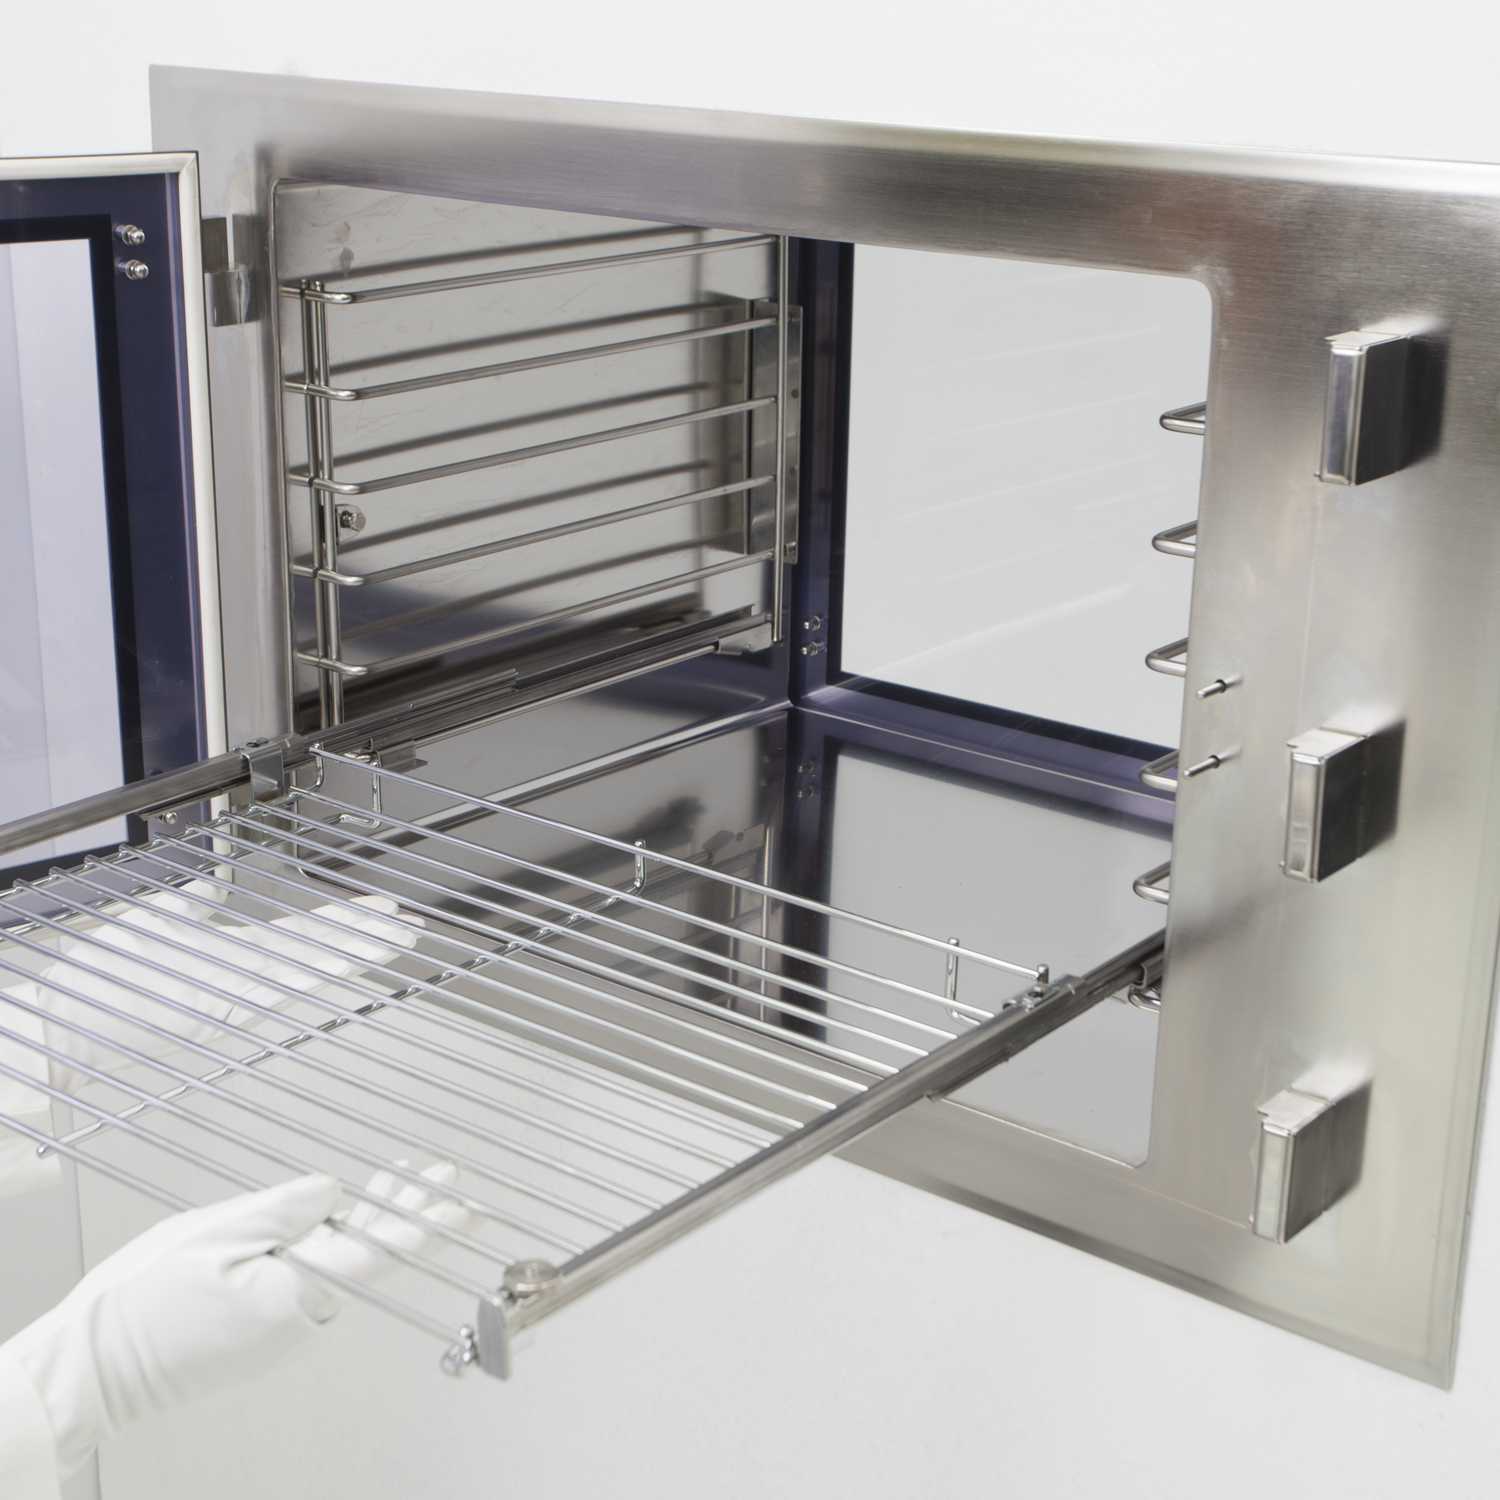 Stainless Steel Slide-Out Pass-Through Shelves